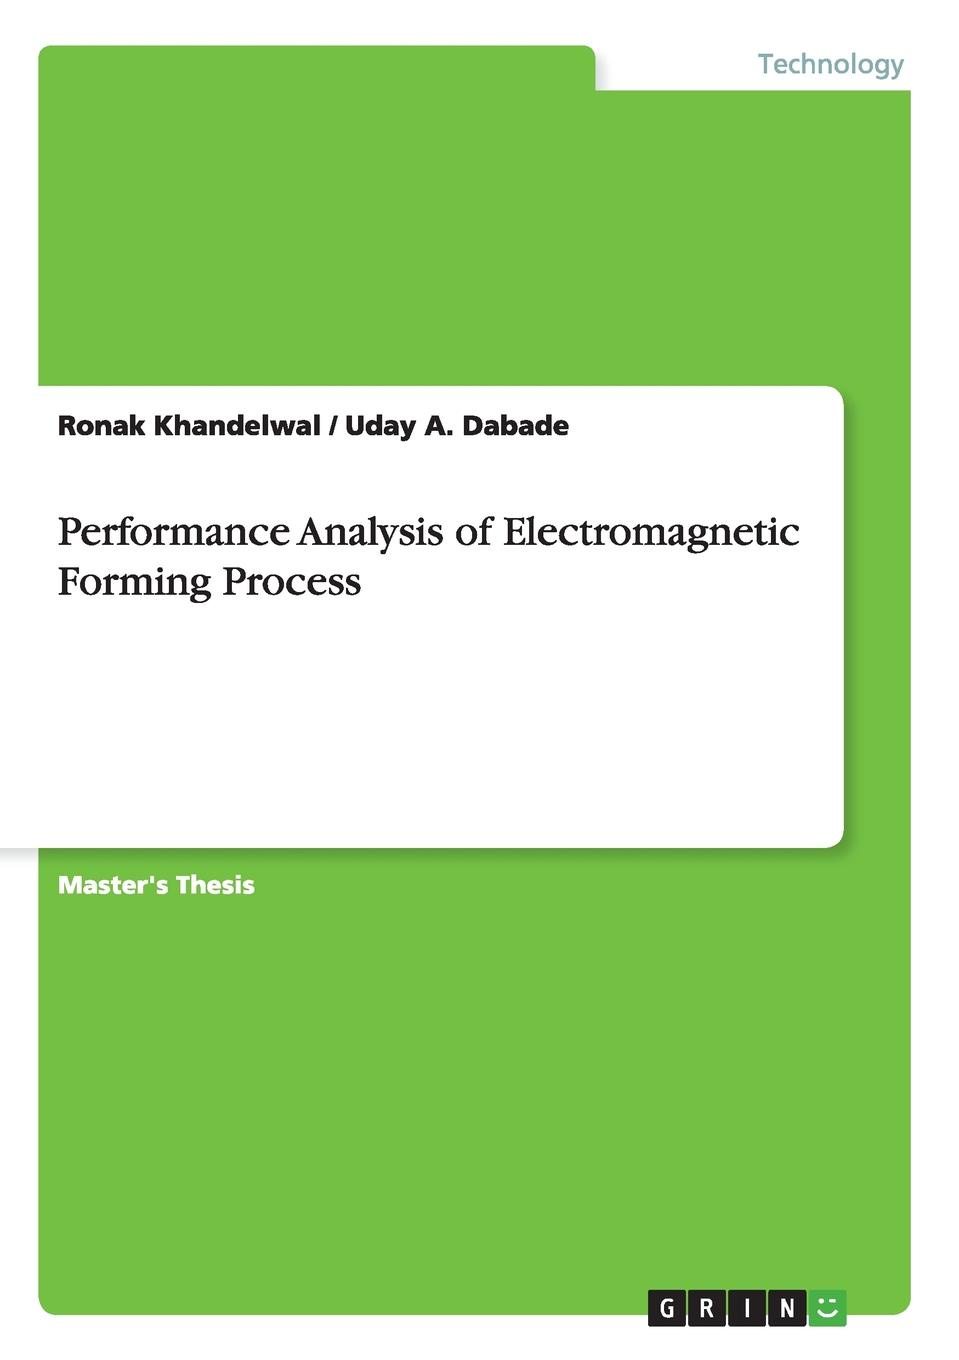 Ronak Khandelwal, Uday A. Dabade Performance Analysis of Electromagnetic Forming Process 1 18 advanced alloy car models high simulation cs95 suv model metal diecasts children s toy vehicles free shipping